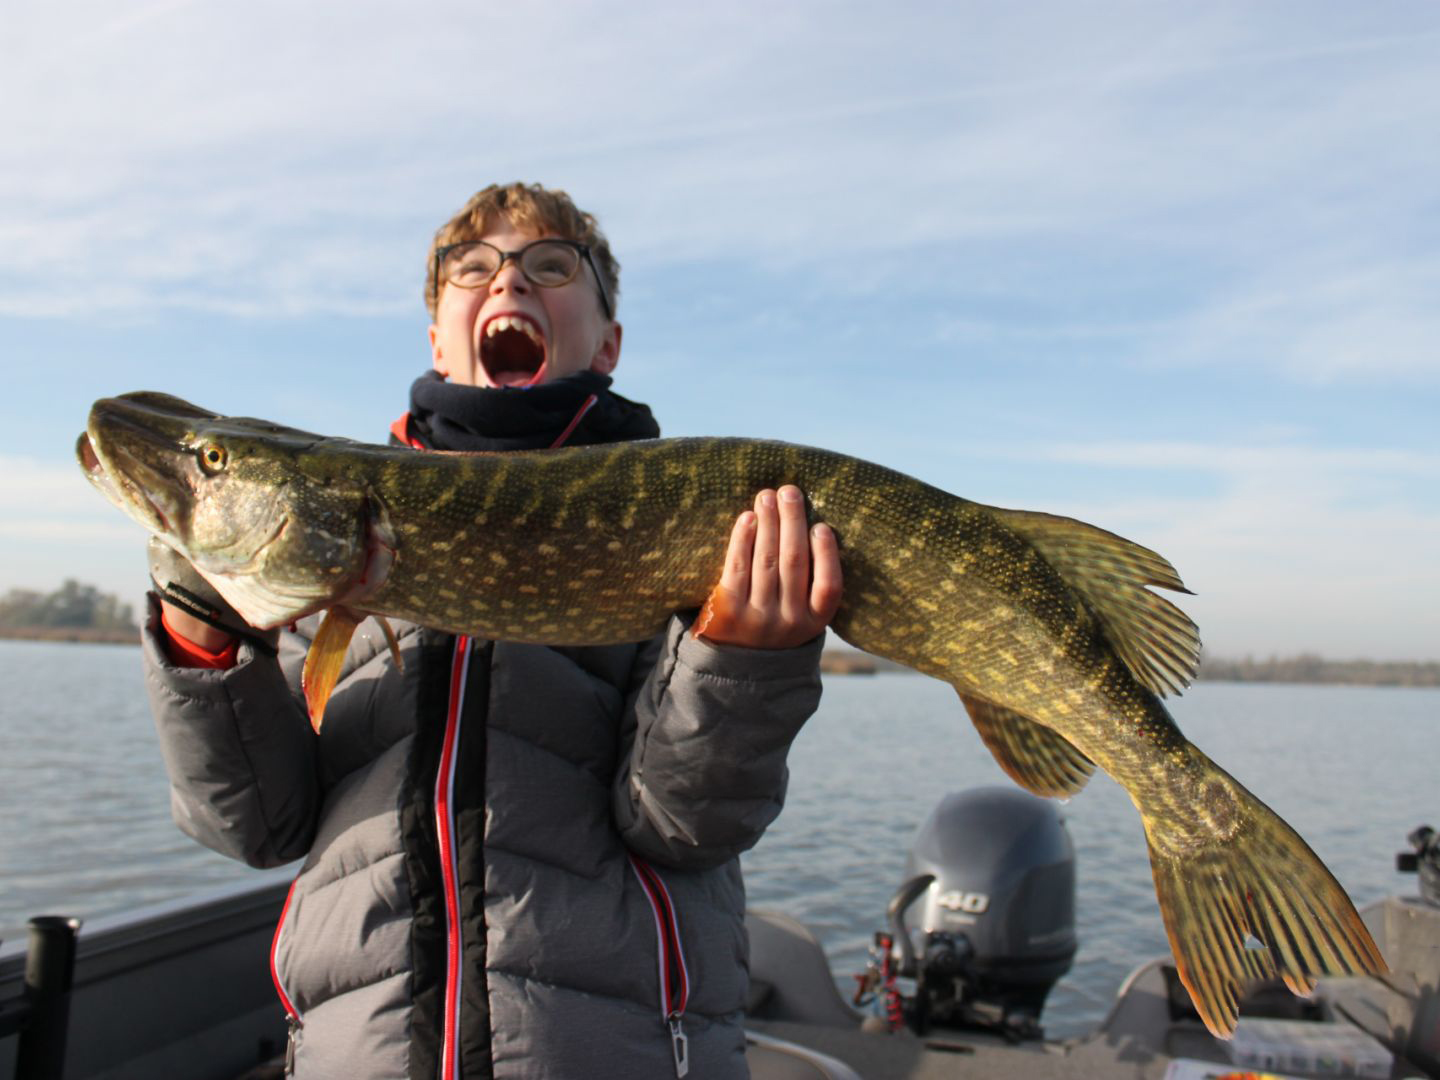 A happy kid smiling, holding a big Pike on a boat